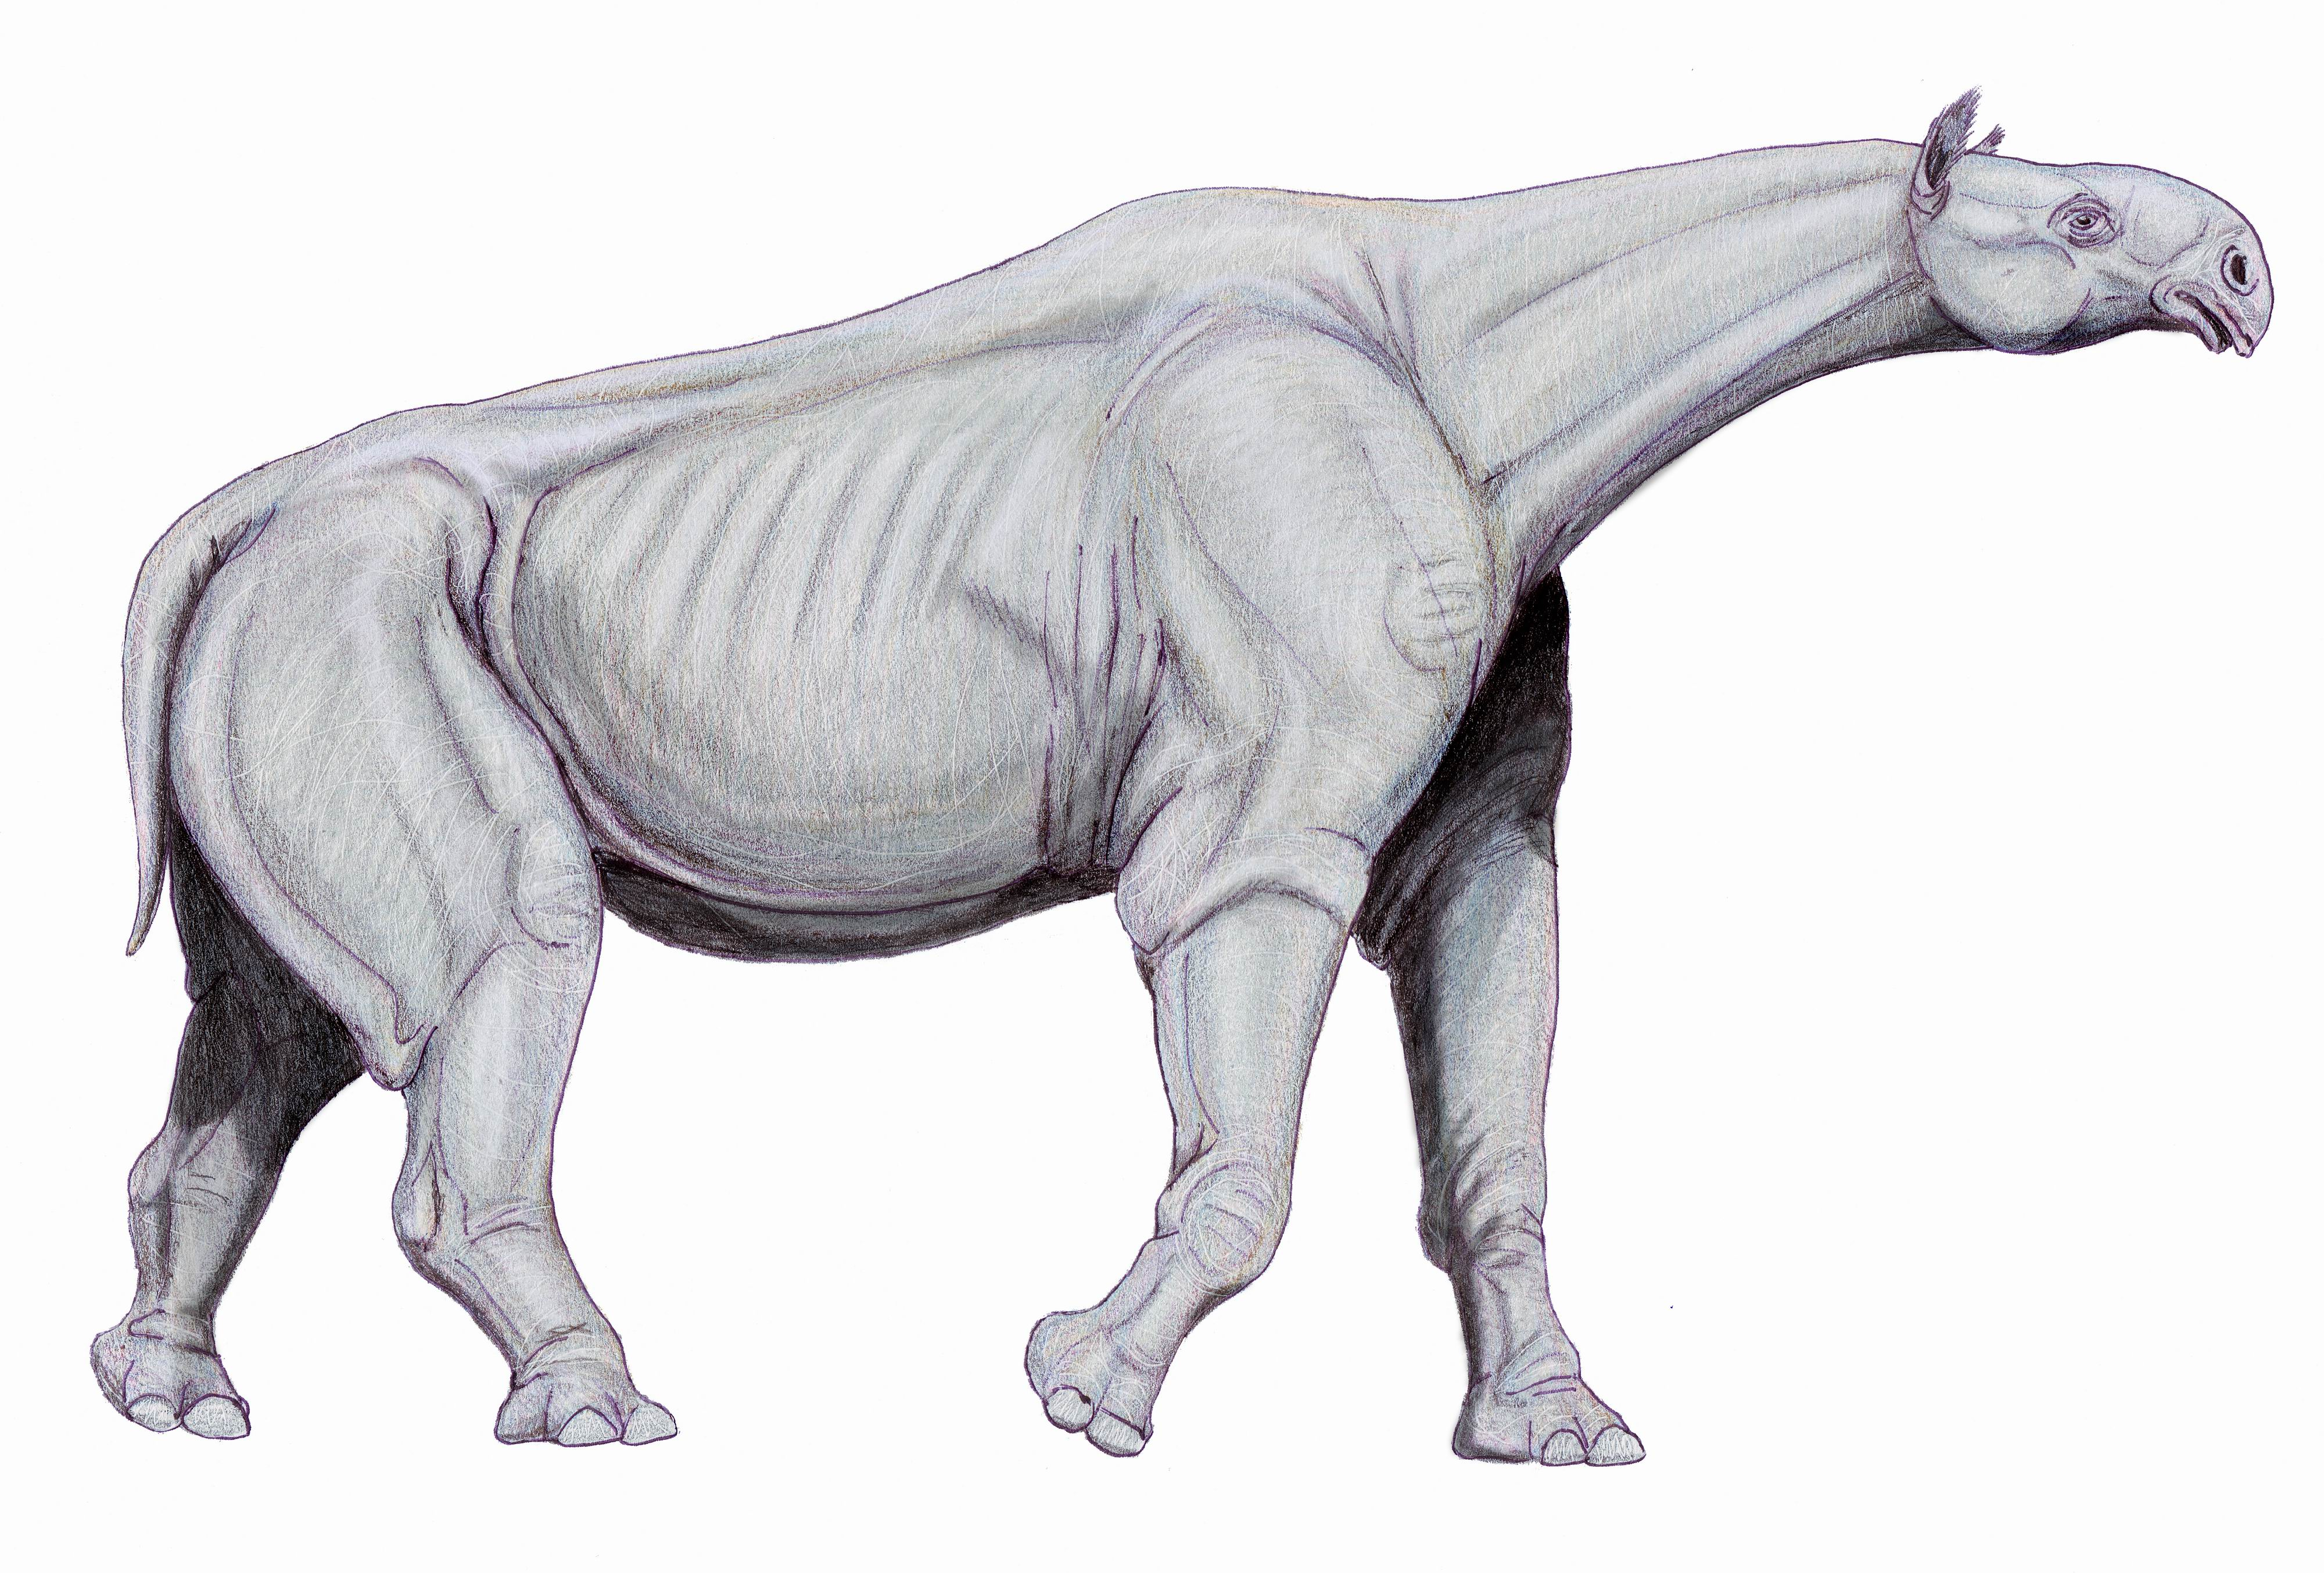 A sketch of the Indricotherium